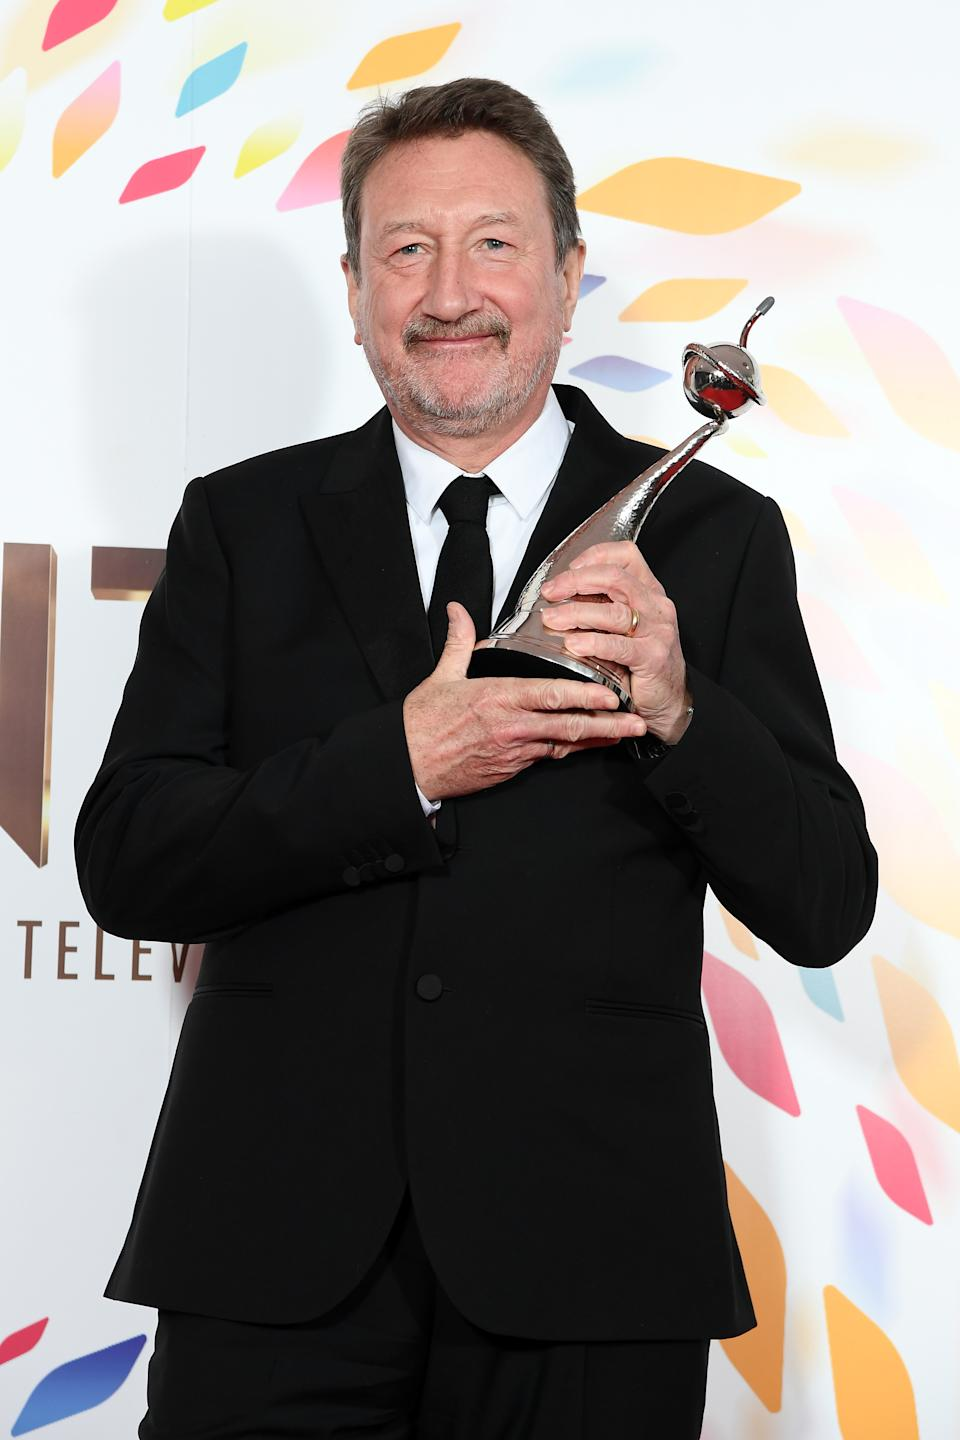 Steven Knight winner of the best Drama Award for Peaky Blinders pose in the winners room during the National Television Awards 2020 at The O2 Arena on January 28, 2020 in London, England. (Photo by Mike Marsland/WireImage)